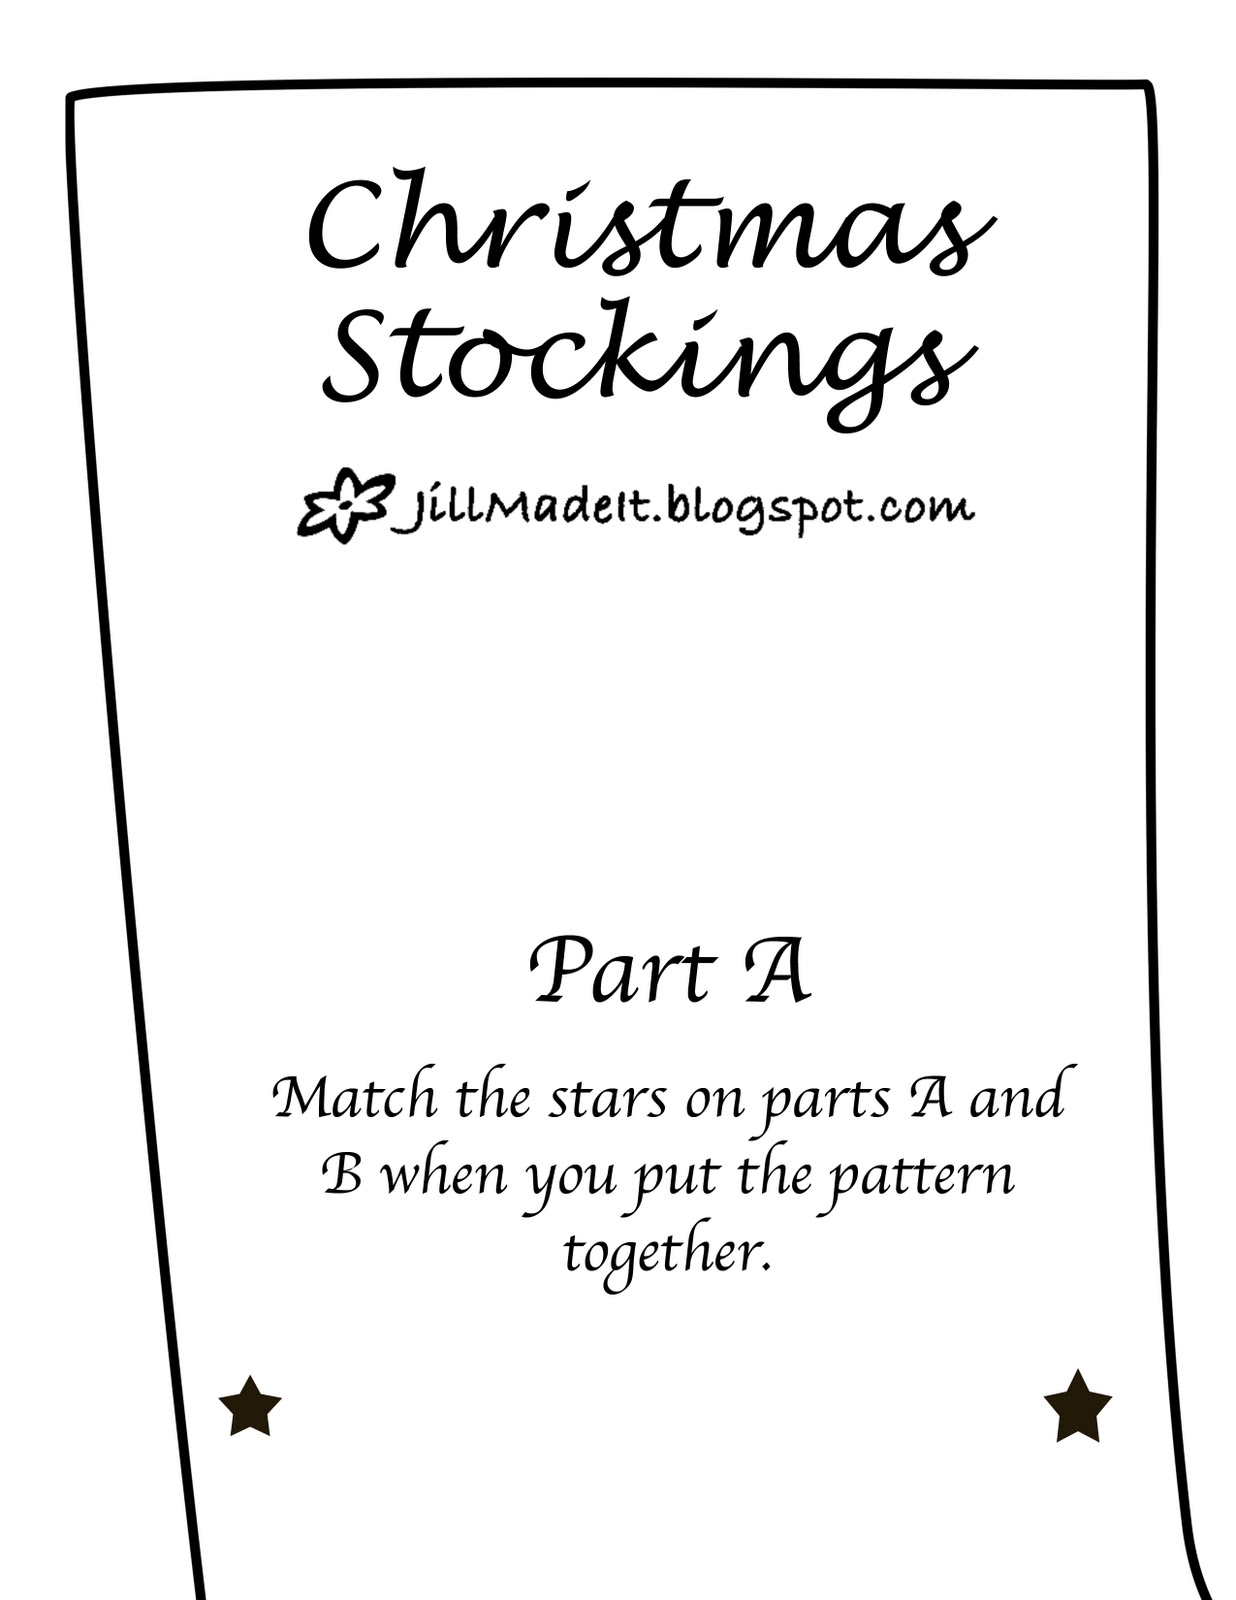 It's just a photo of Crazy Printable Stocking Patterns